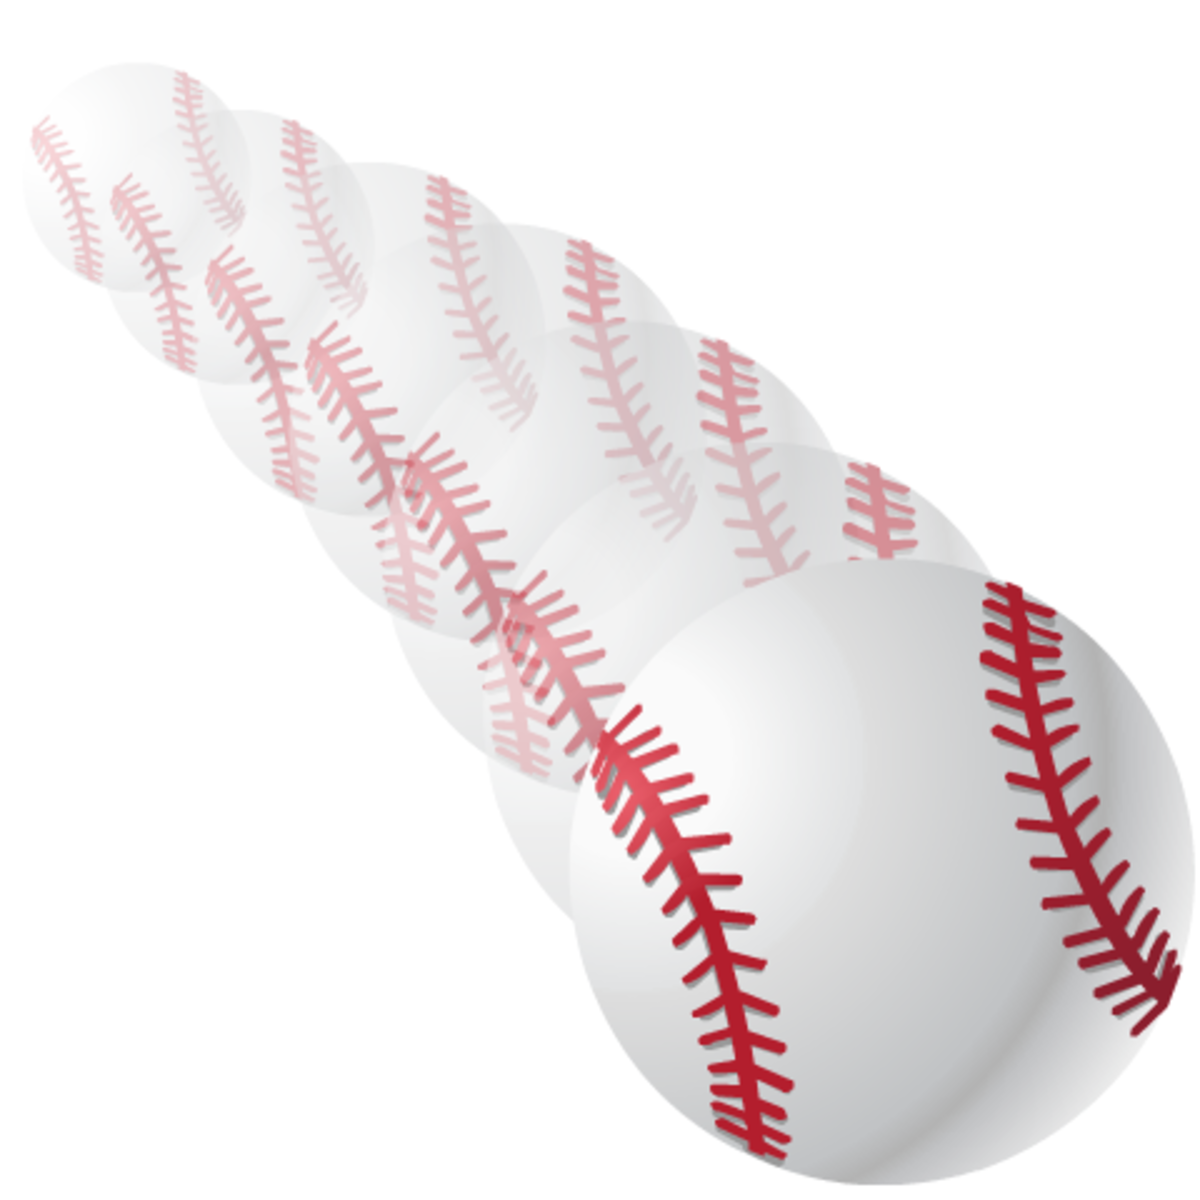 Please scroll down to see all the free baseball clip art